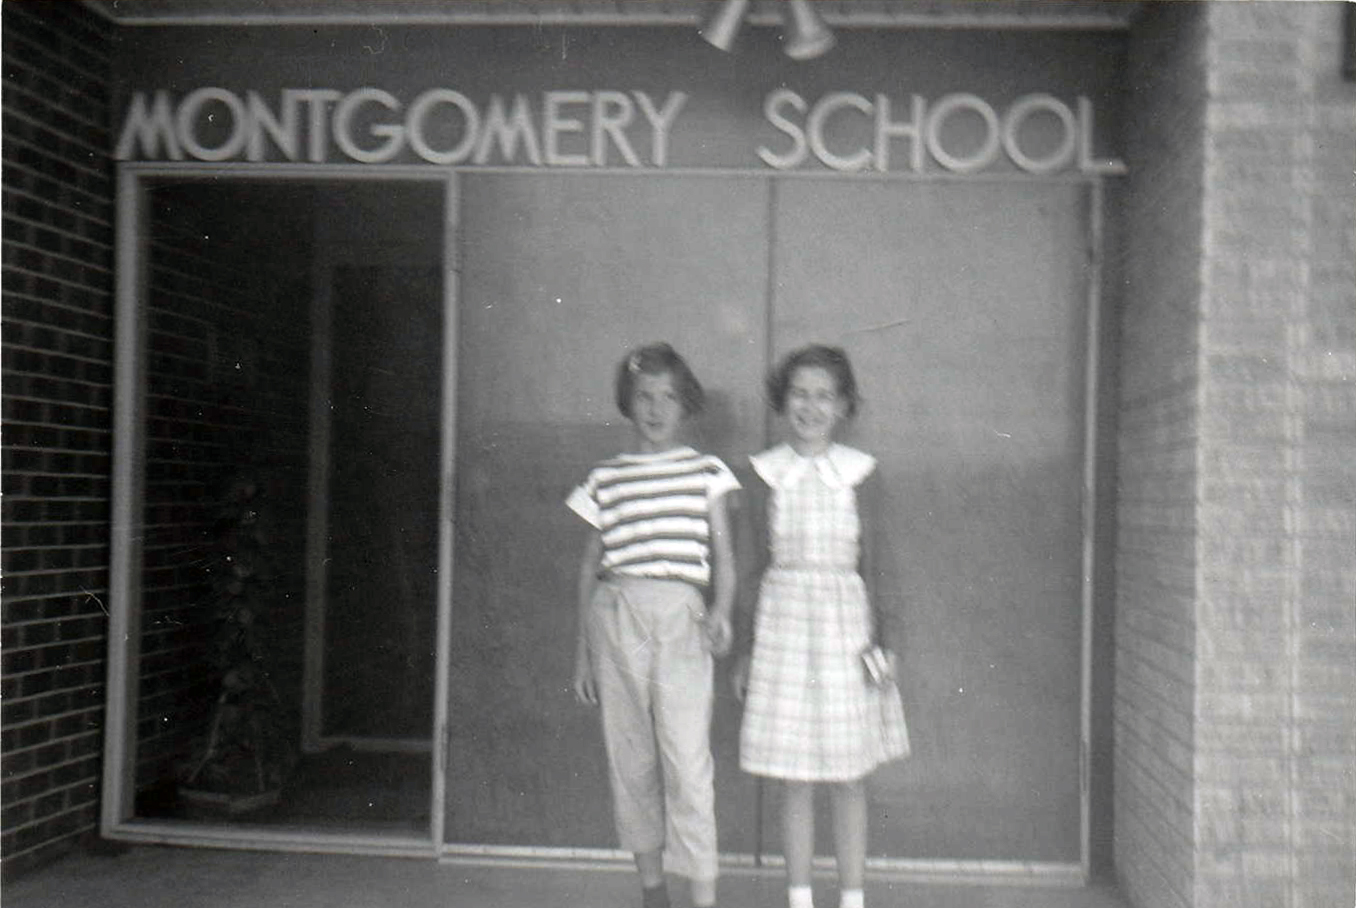 1958 Montgomery school chums 1